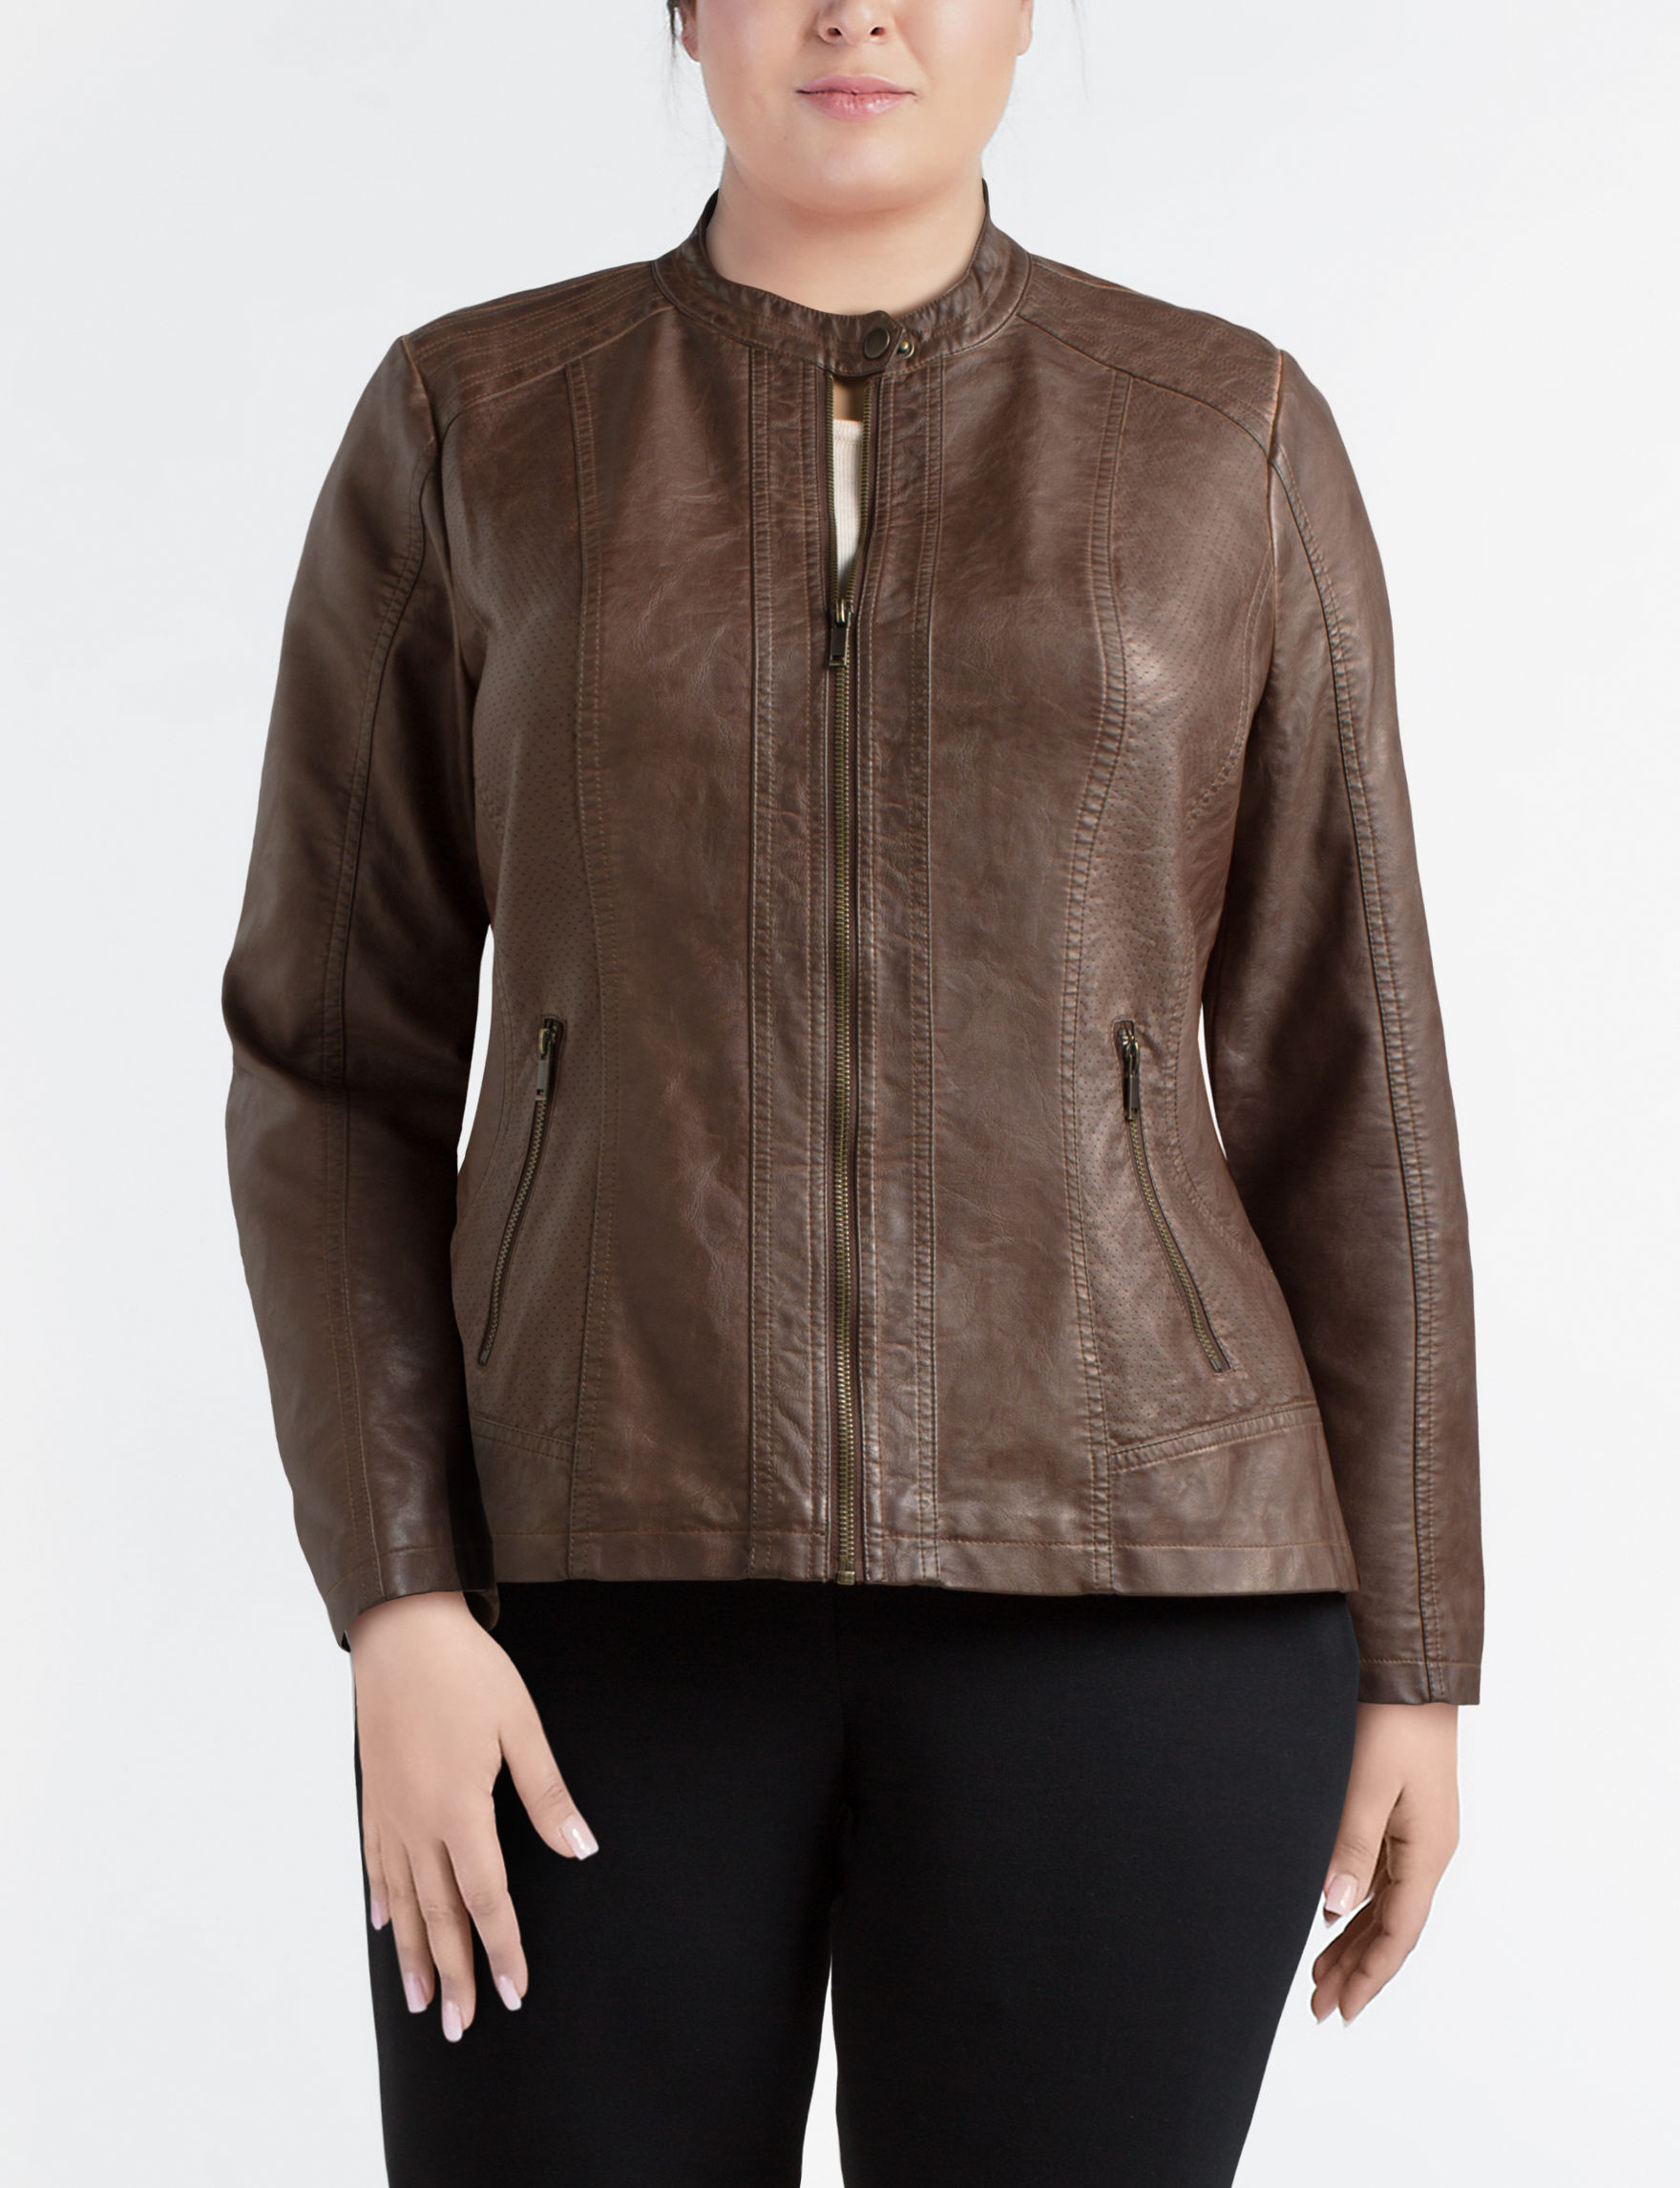 Valerie Stevens Medium Brown Bomber & Moto Jackets